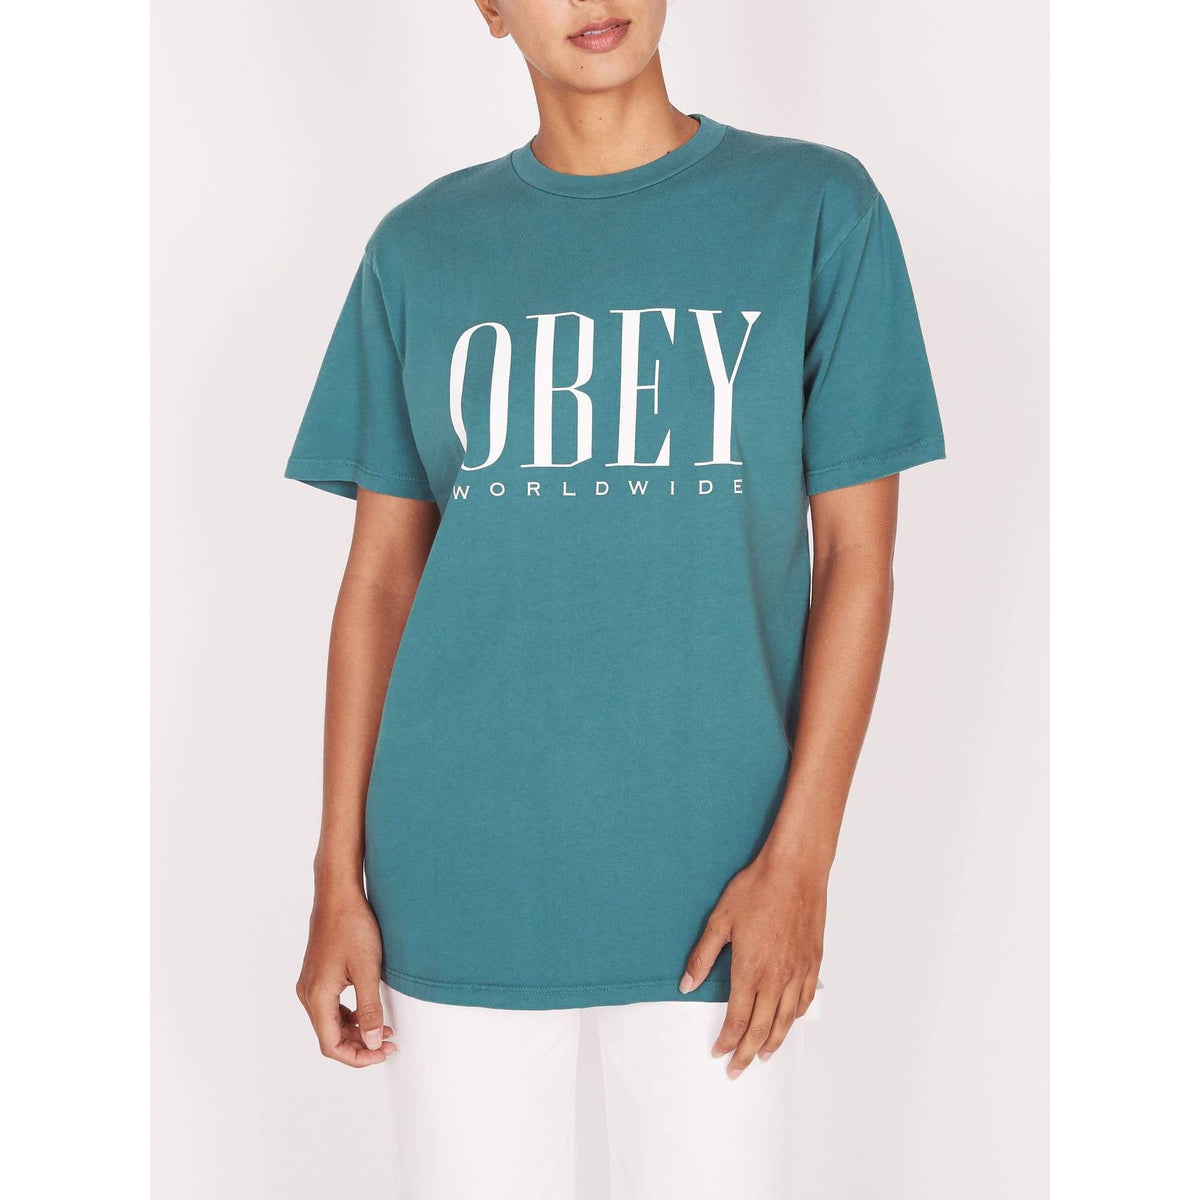 obey t-shirt,, image 1